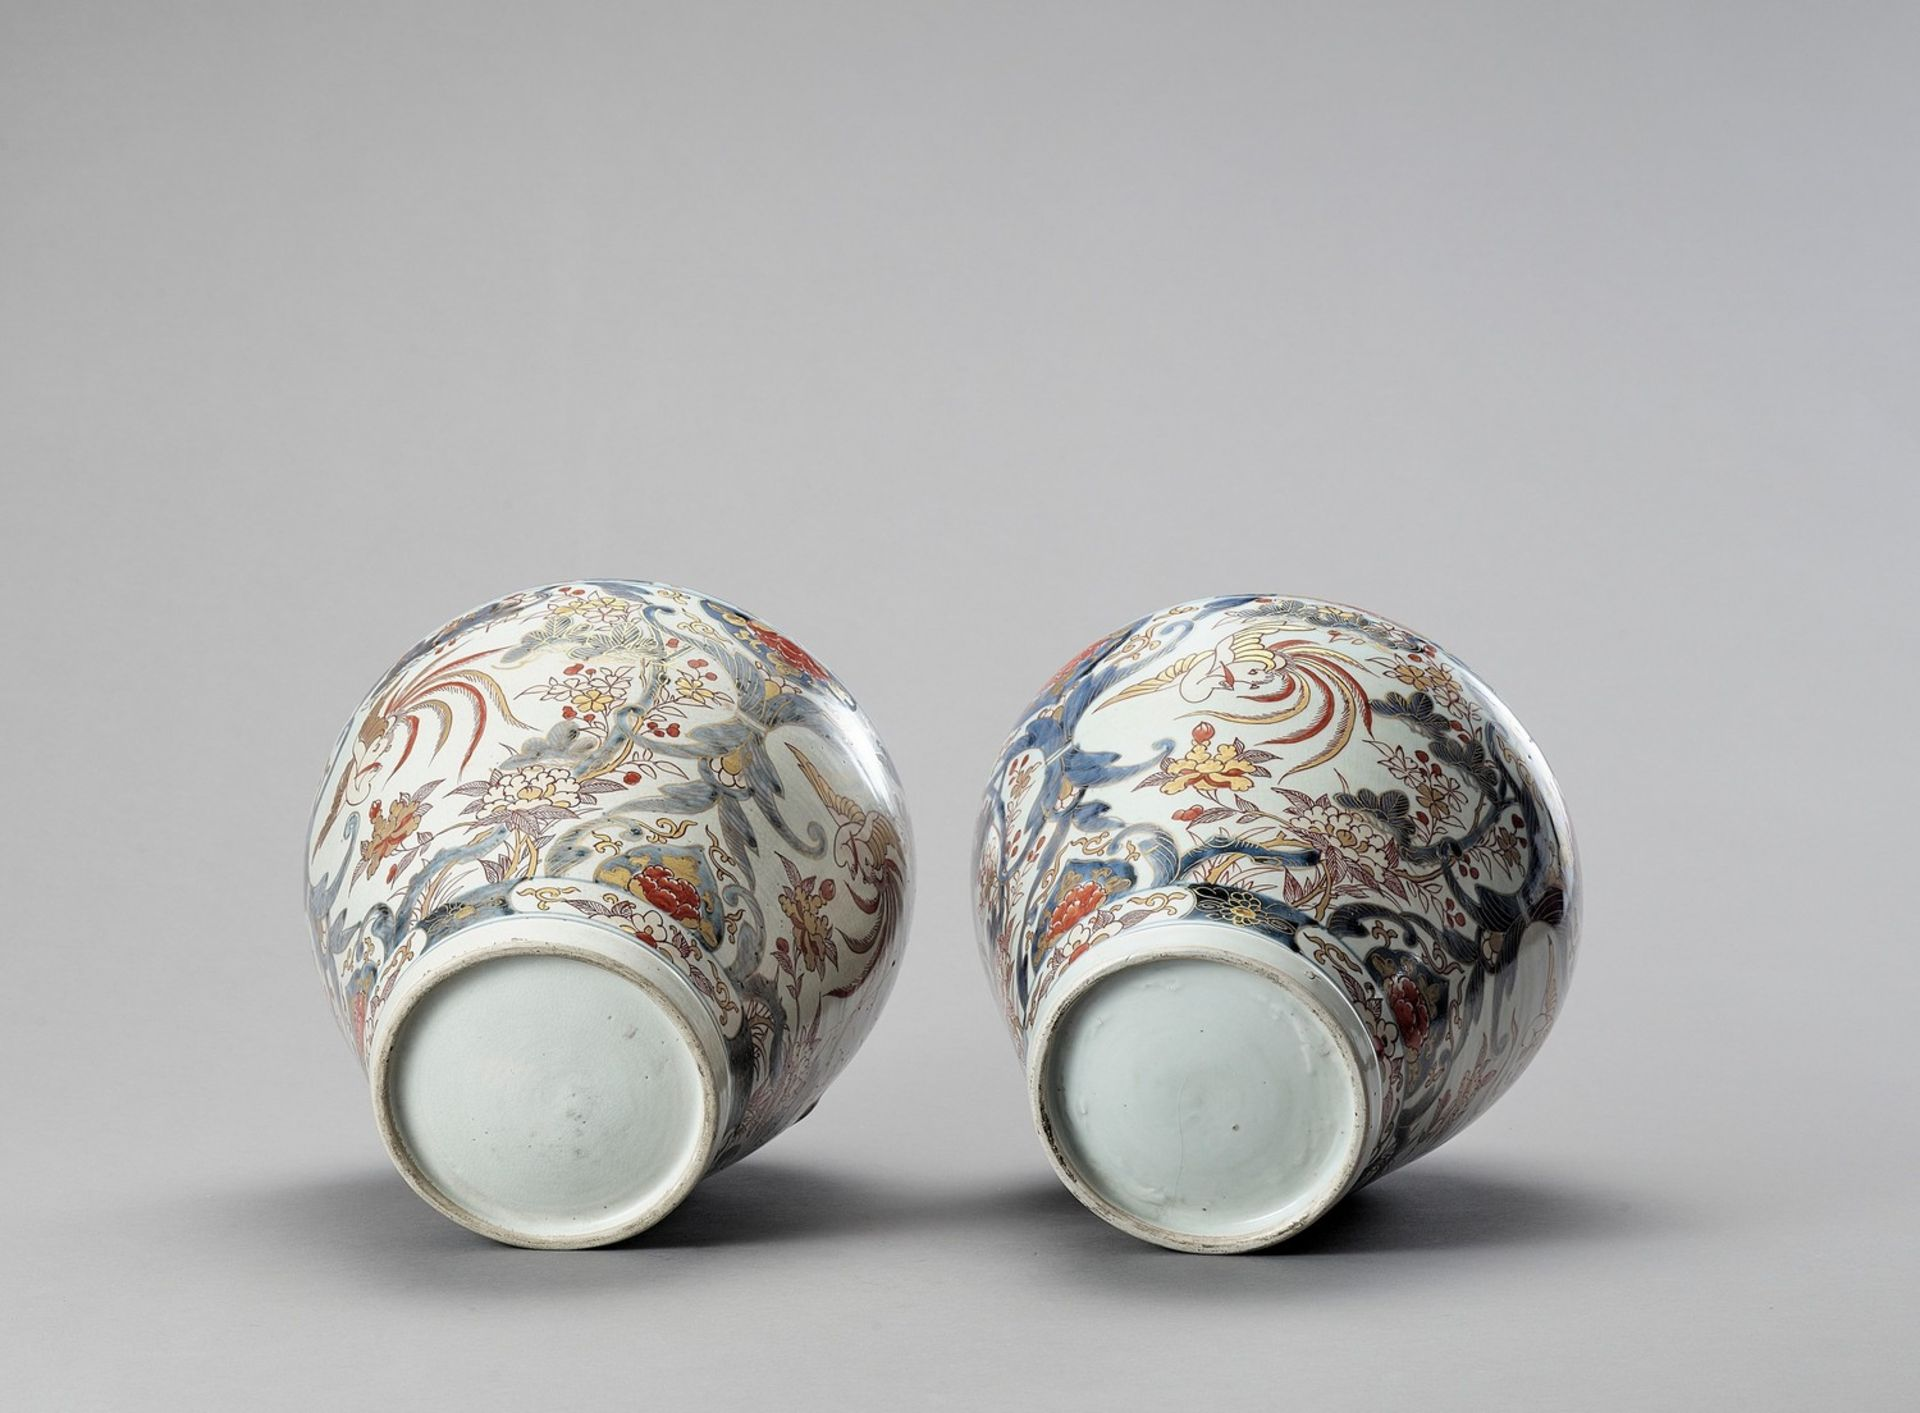 A LARGE PAIR OF IMARI PORCELAIN VASES AND COVERS - Image 6 of 6